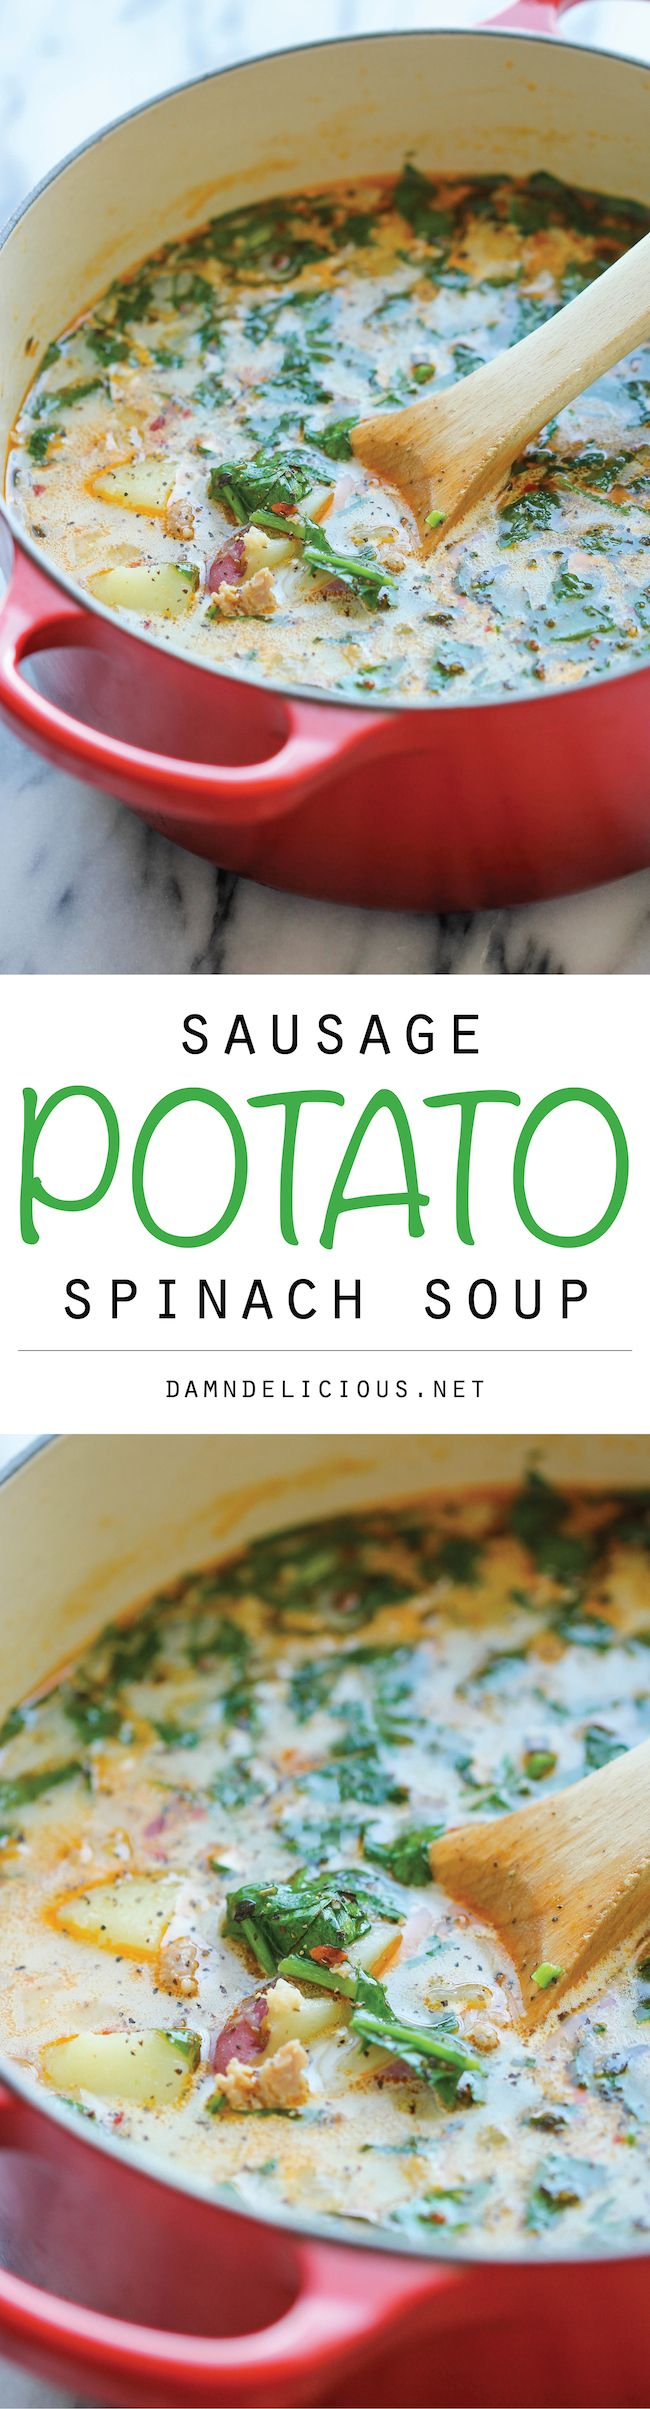 Sausage, Potato and Spinach Soup - Save recipe on iPhone by ONE snap via Sight…